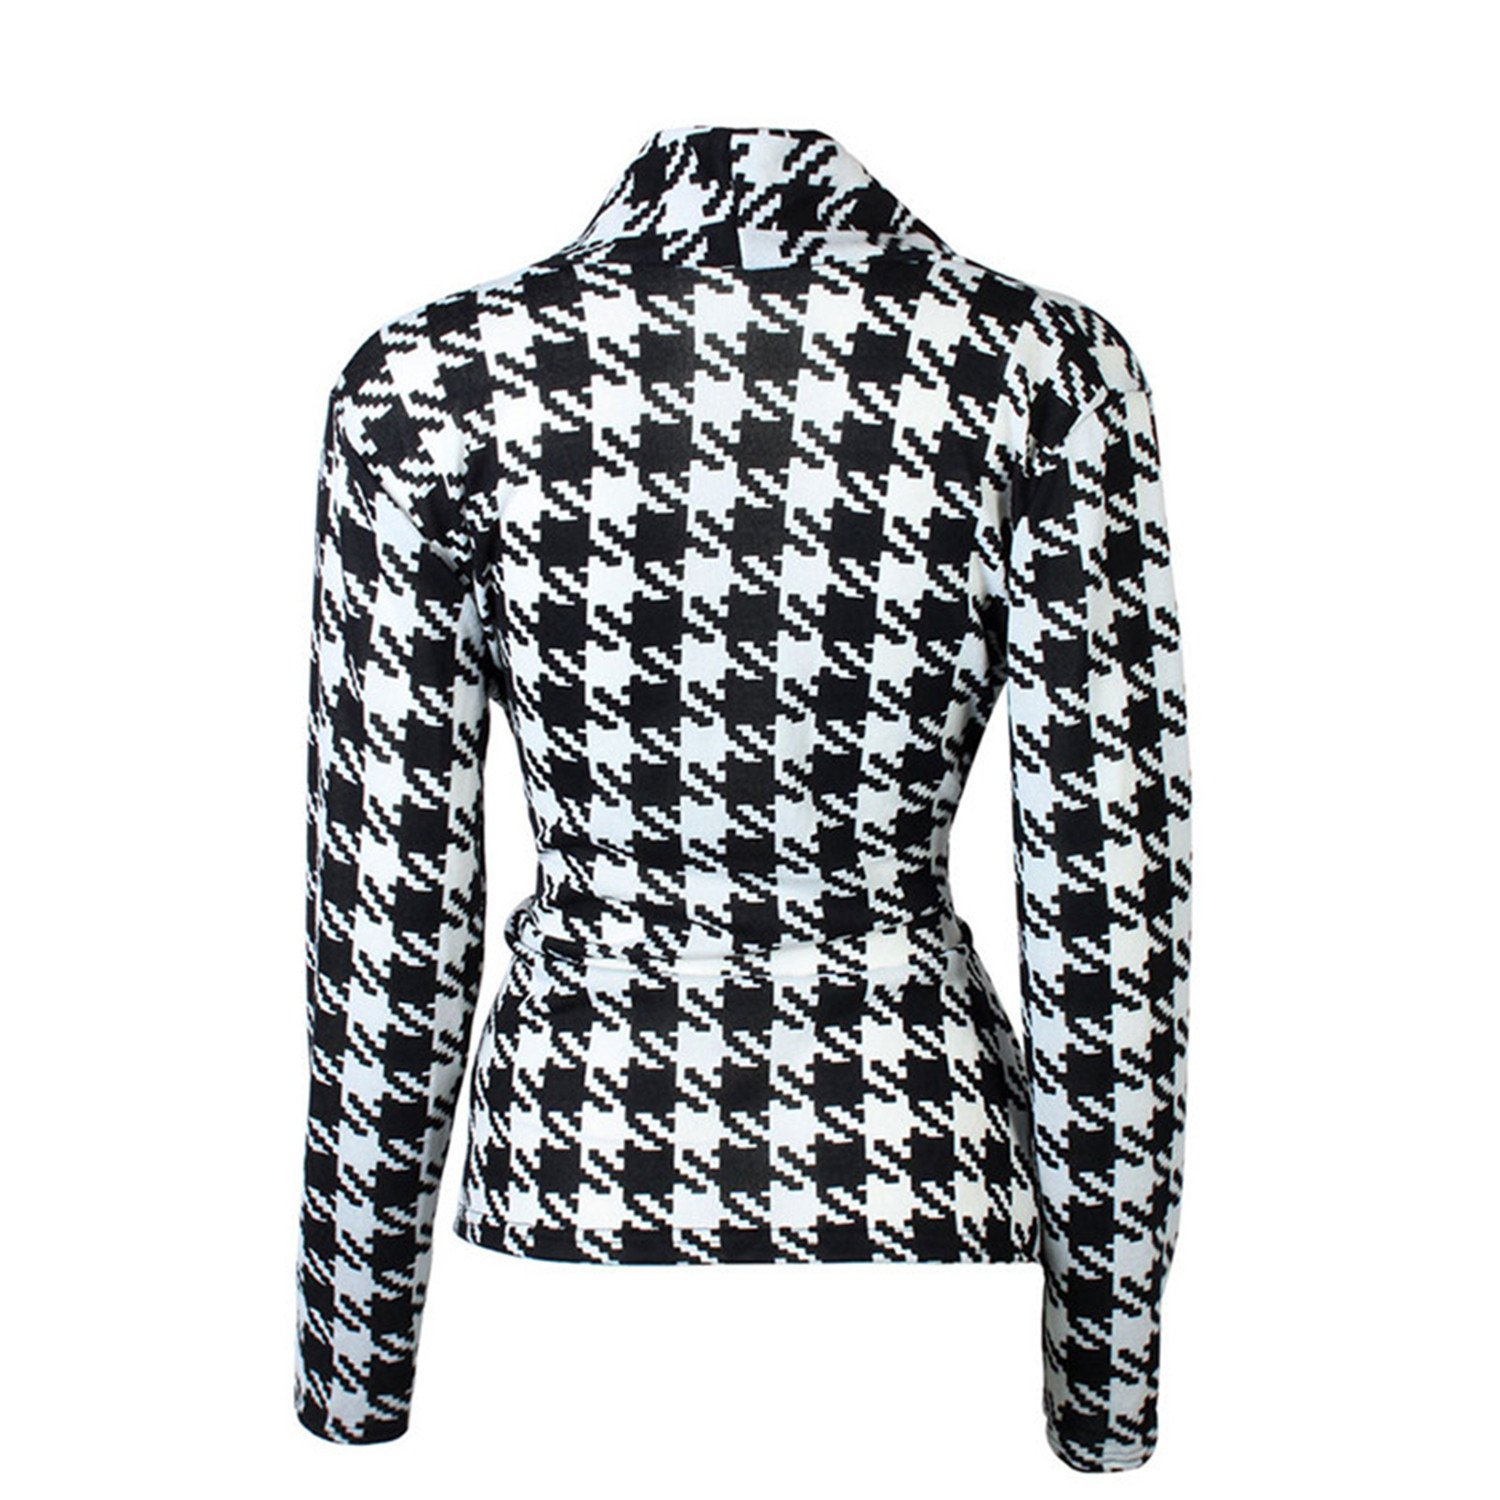 Michael Palmer Women Jackets Black White Plaid Blazer Coat Work Wear Office OL style Blazer with Sashes at Amazon Womens Clothing store: